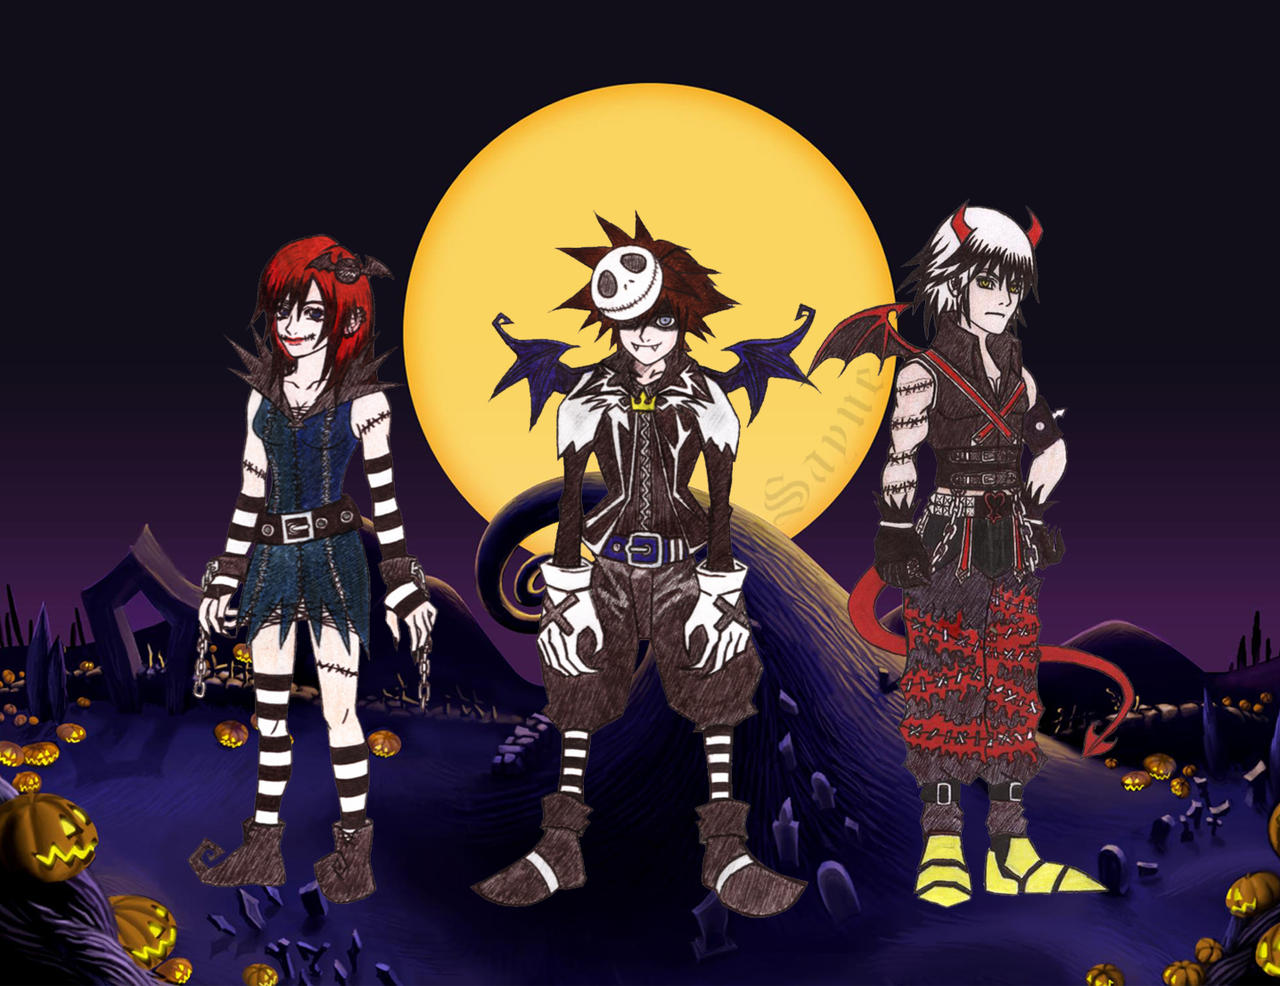 Kingdom hearts Halloween by Sayne7 on DeviantArt